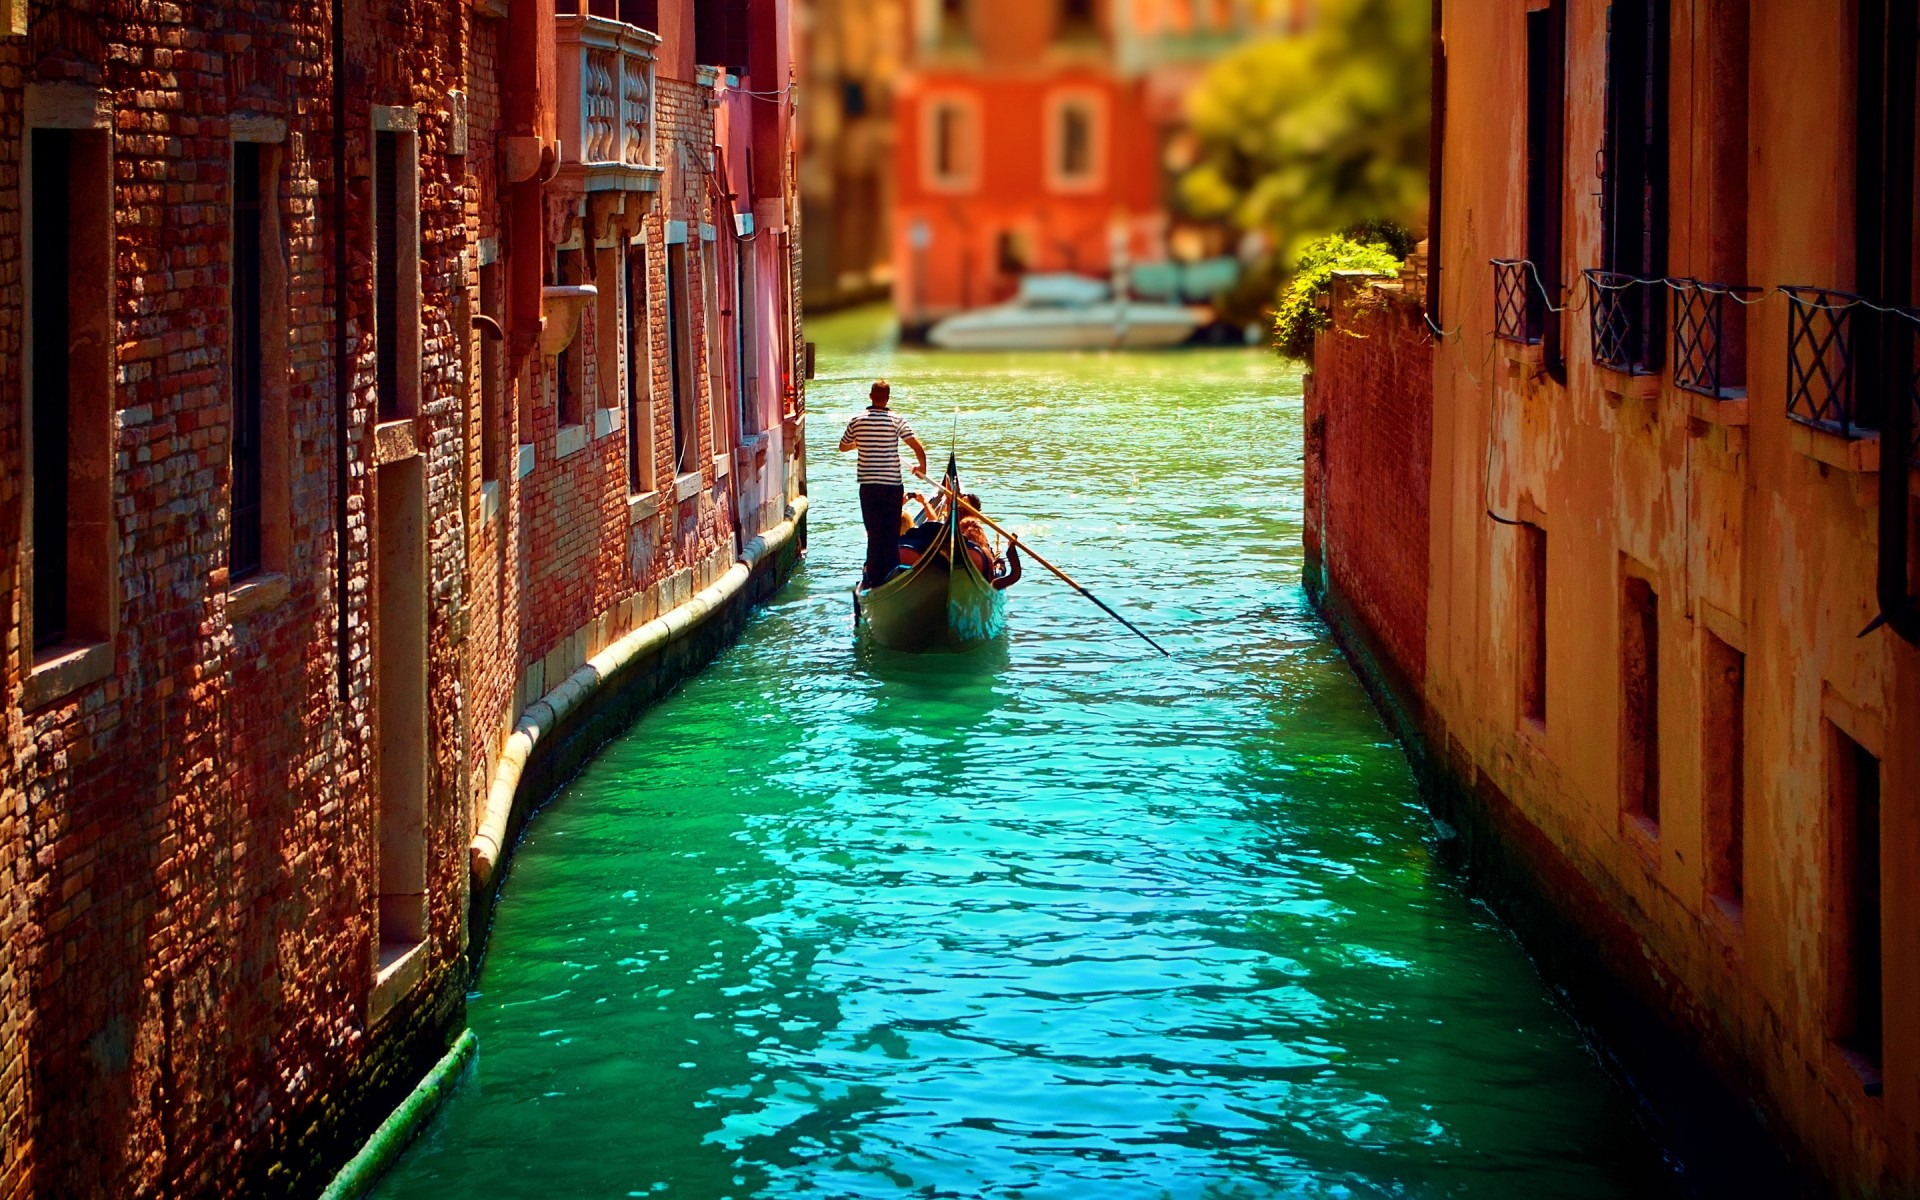 italy gondola canal water travel venetian architecture gondolier boat street city lagoon outdoors reflection old river bridge building hdr landscape